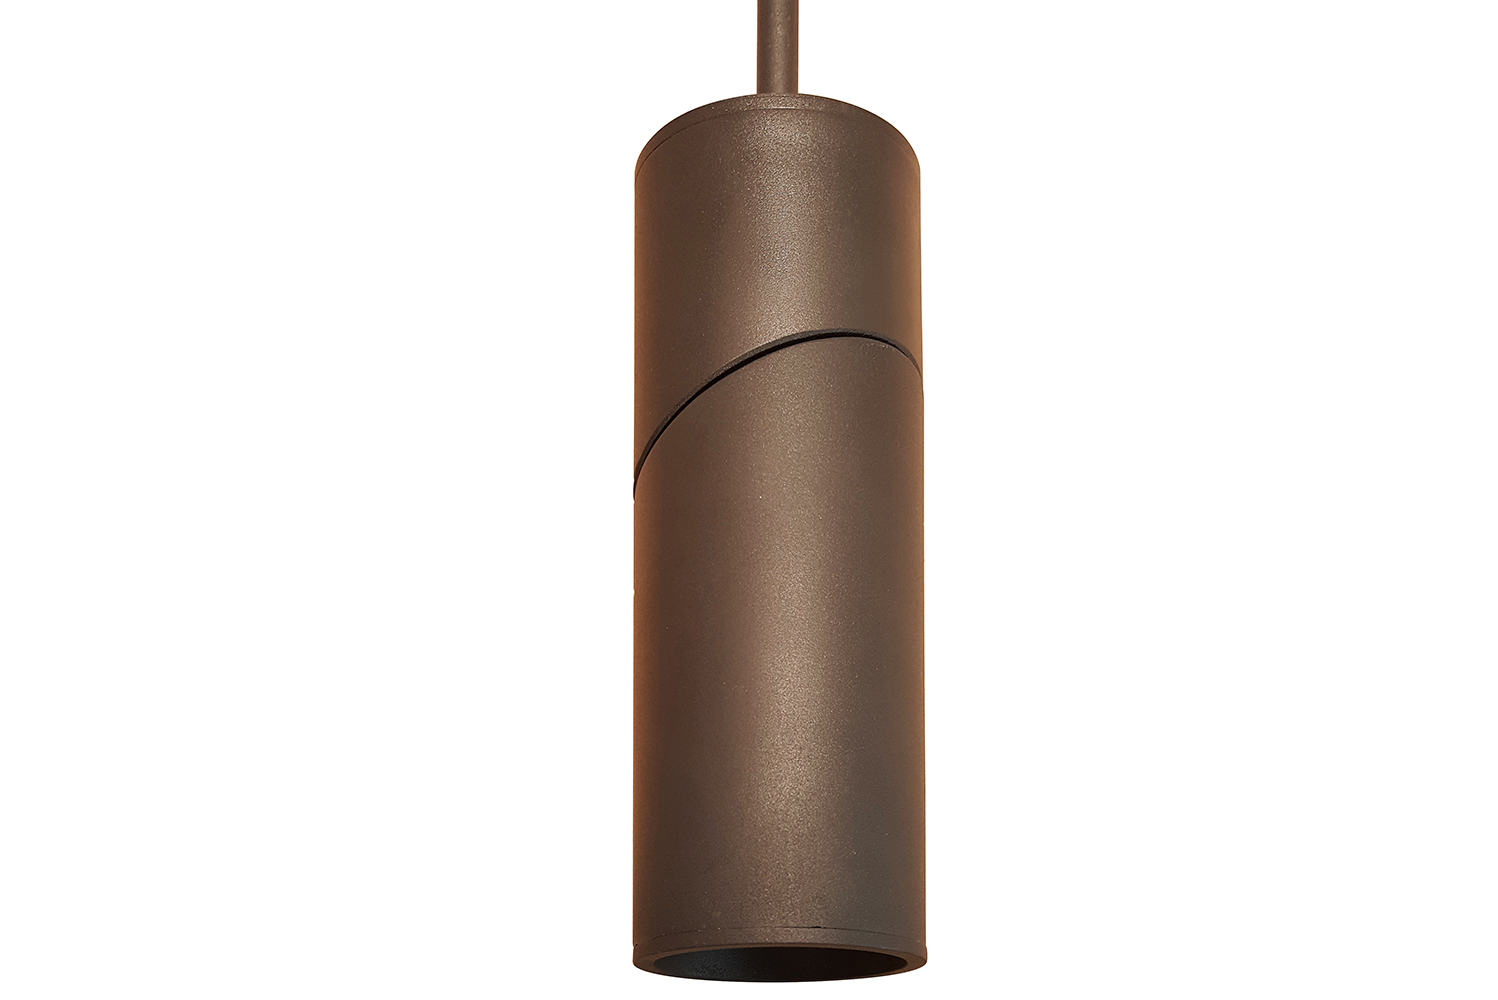 CSL (Creative Systems Lighting), manufacturer of lighting solutions for commercial and residential projects, released another collection in its line of eco-downlight cylinders.